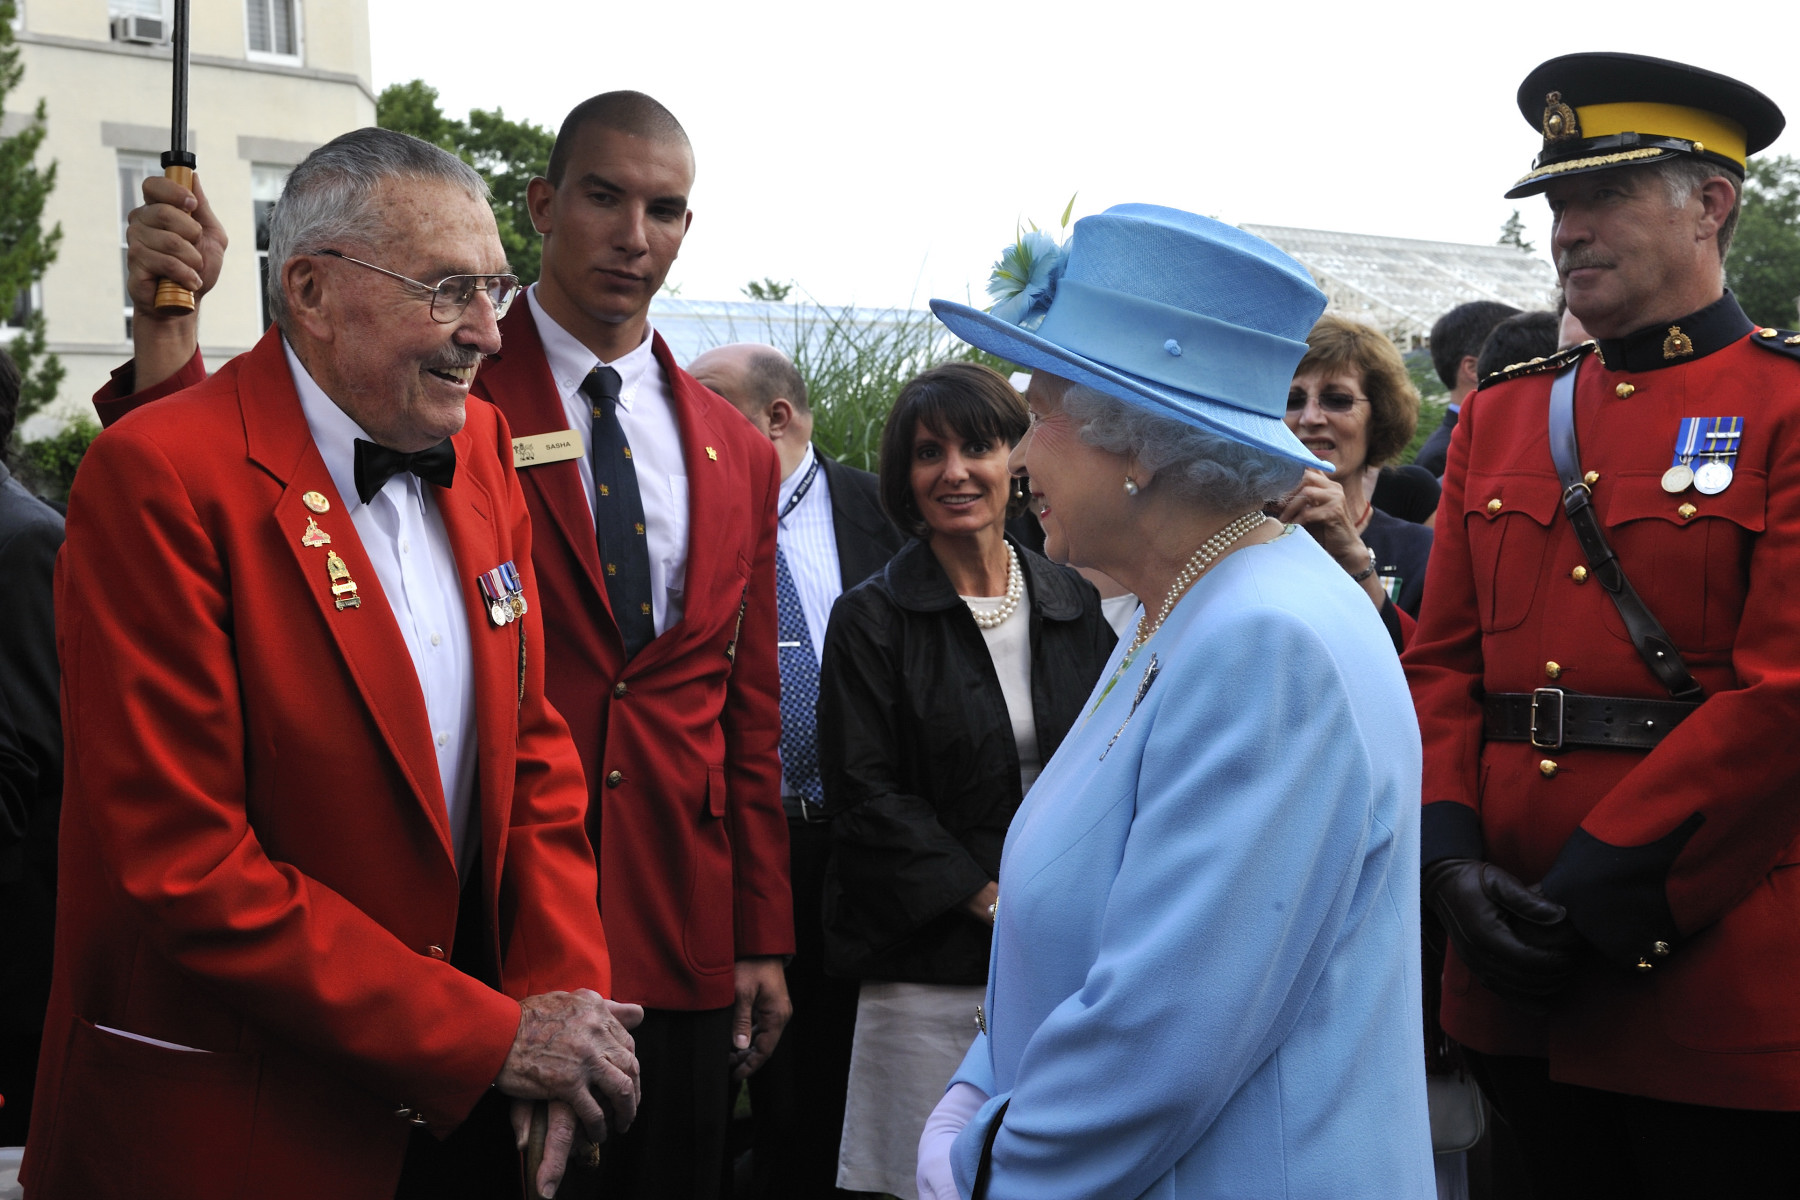 Her Majesty was introduced to a veteran, just before she ended her walkabout in the garden.